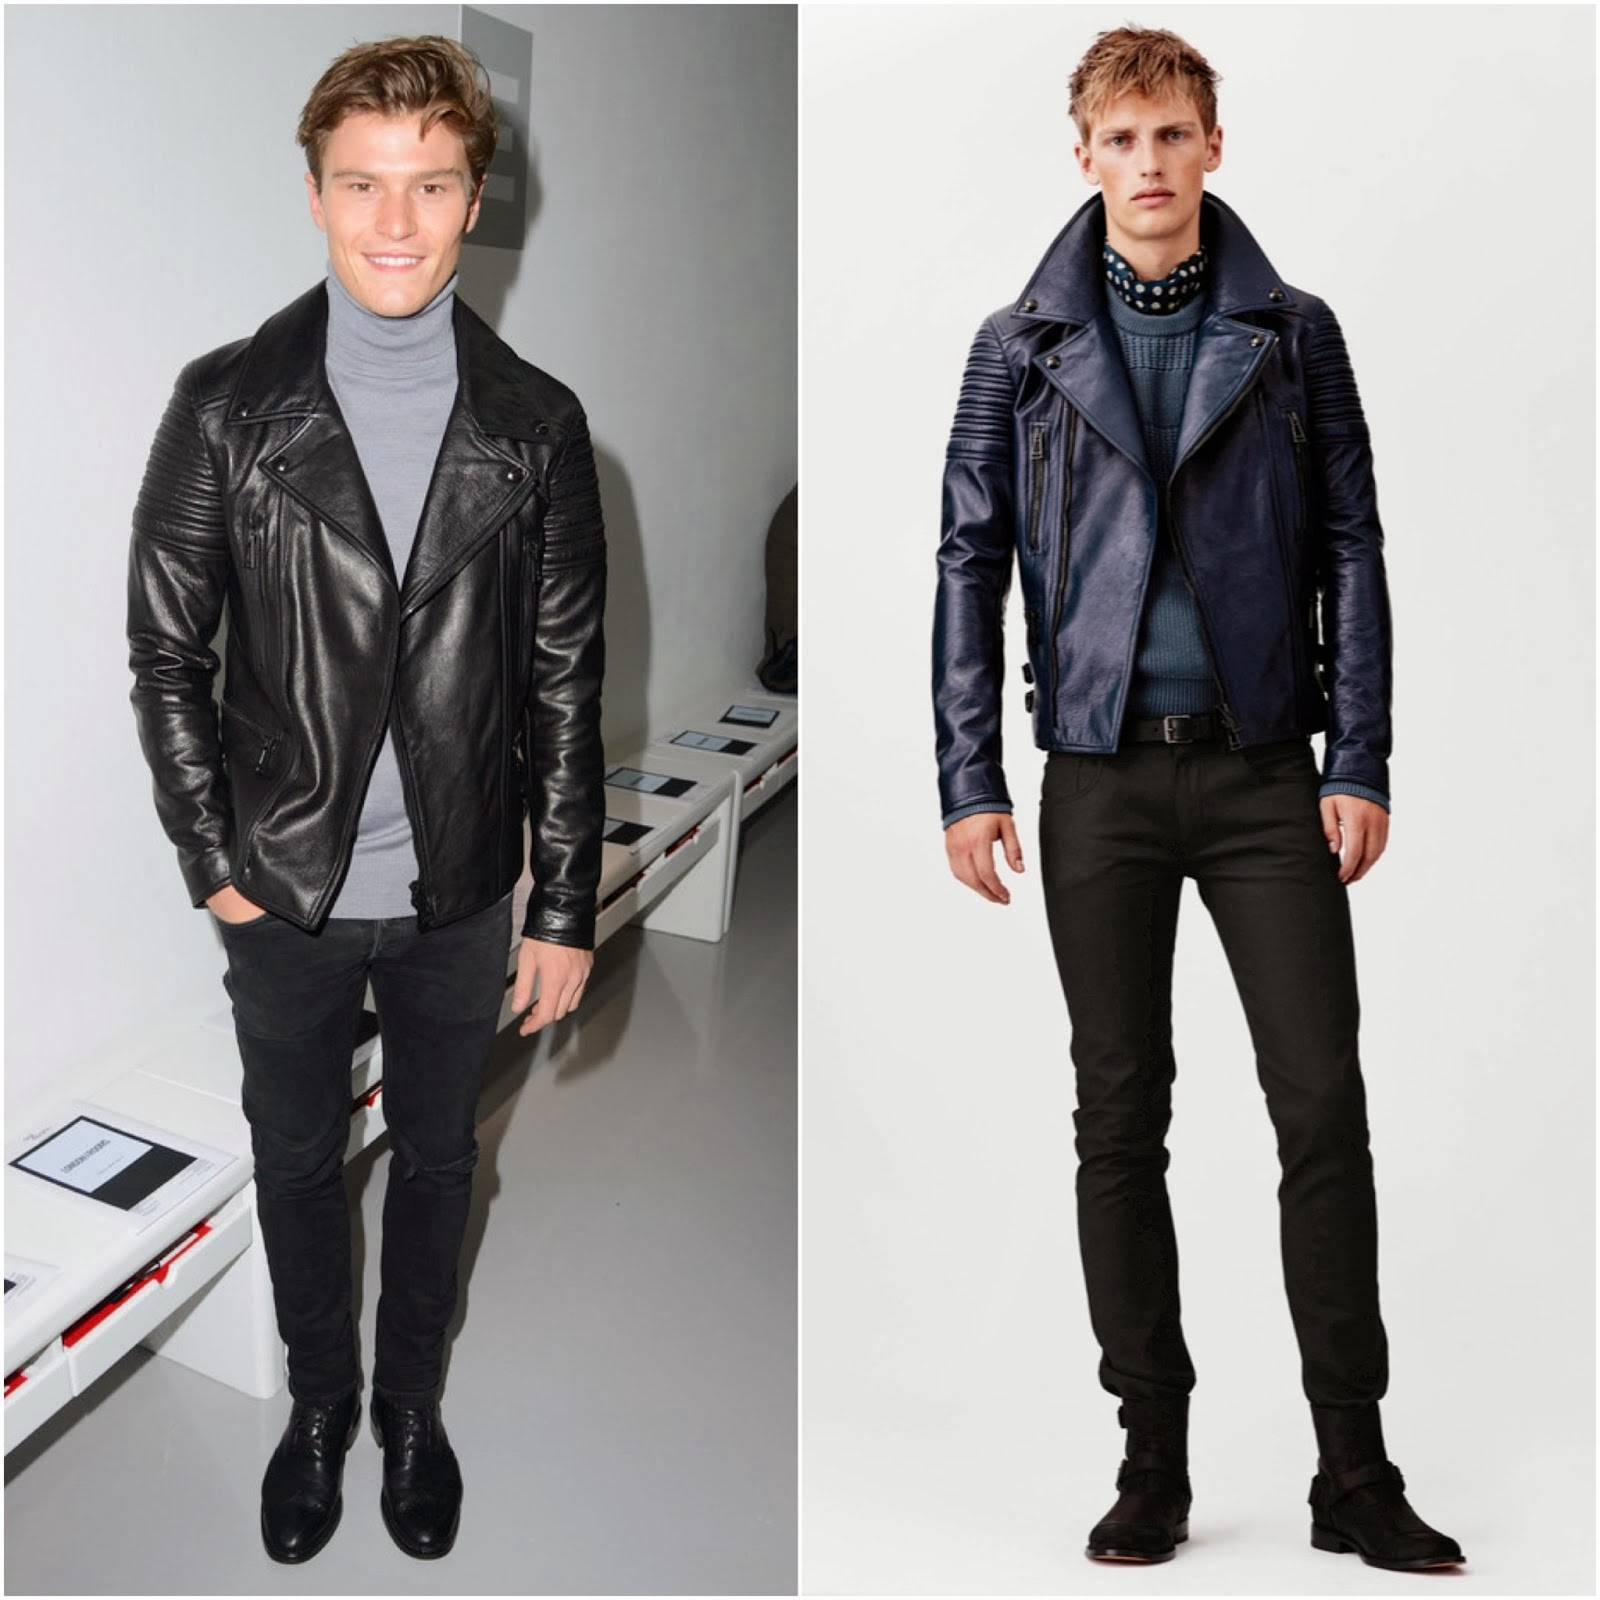 Oliver Cheshire in Belstaff - London Collections: Men FW2014 Day 3 #LCM